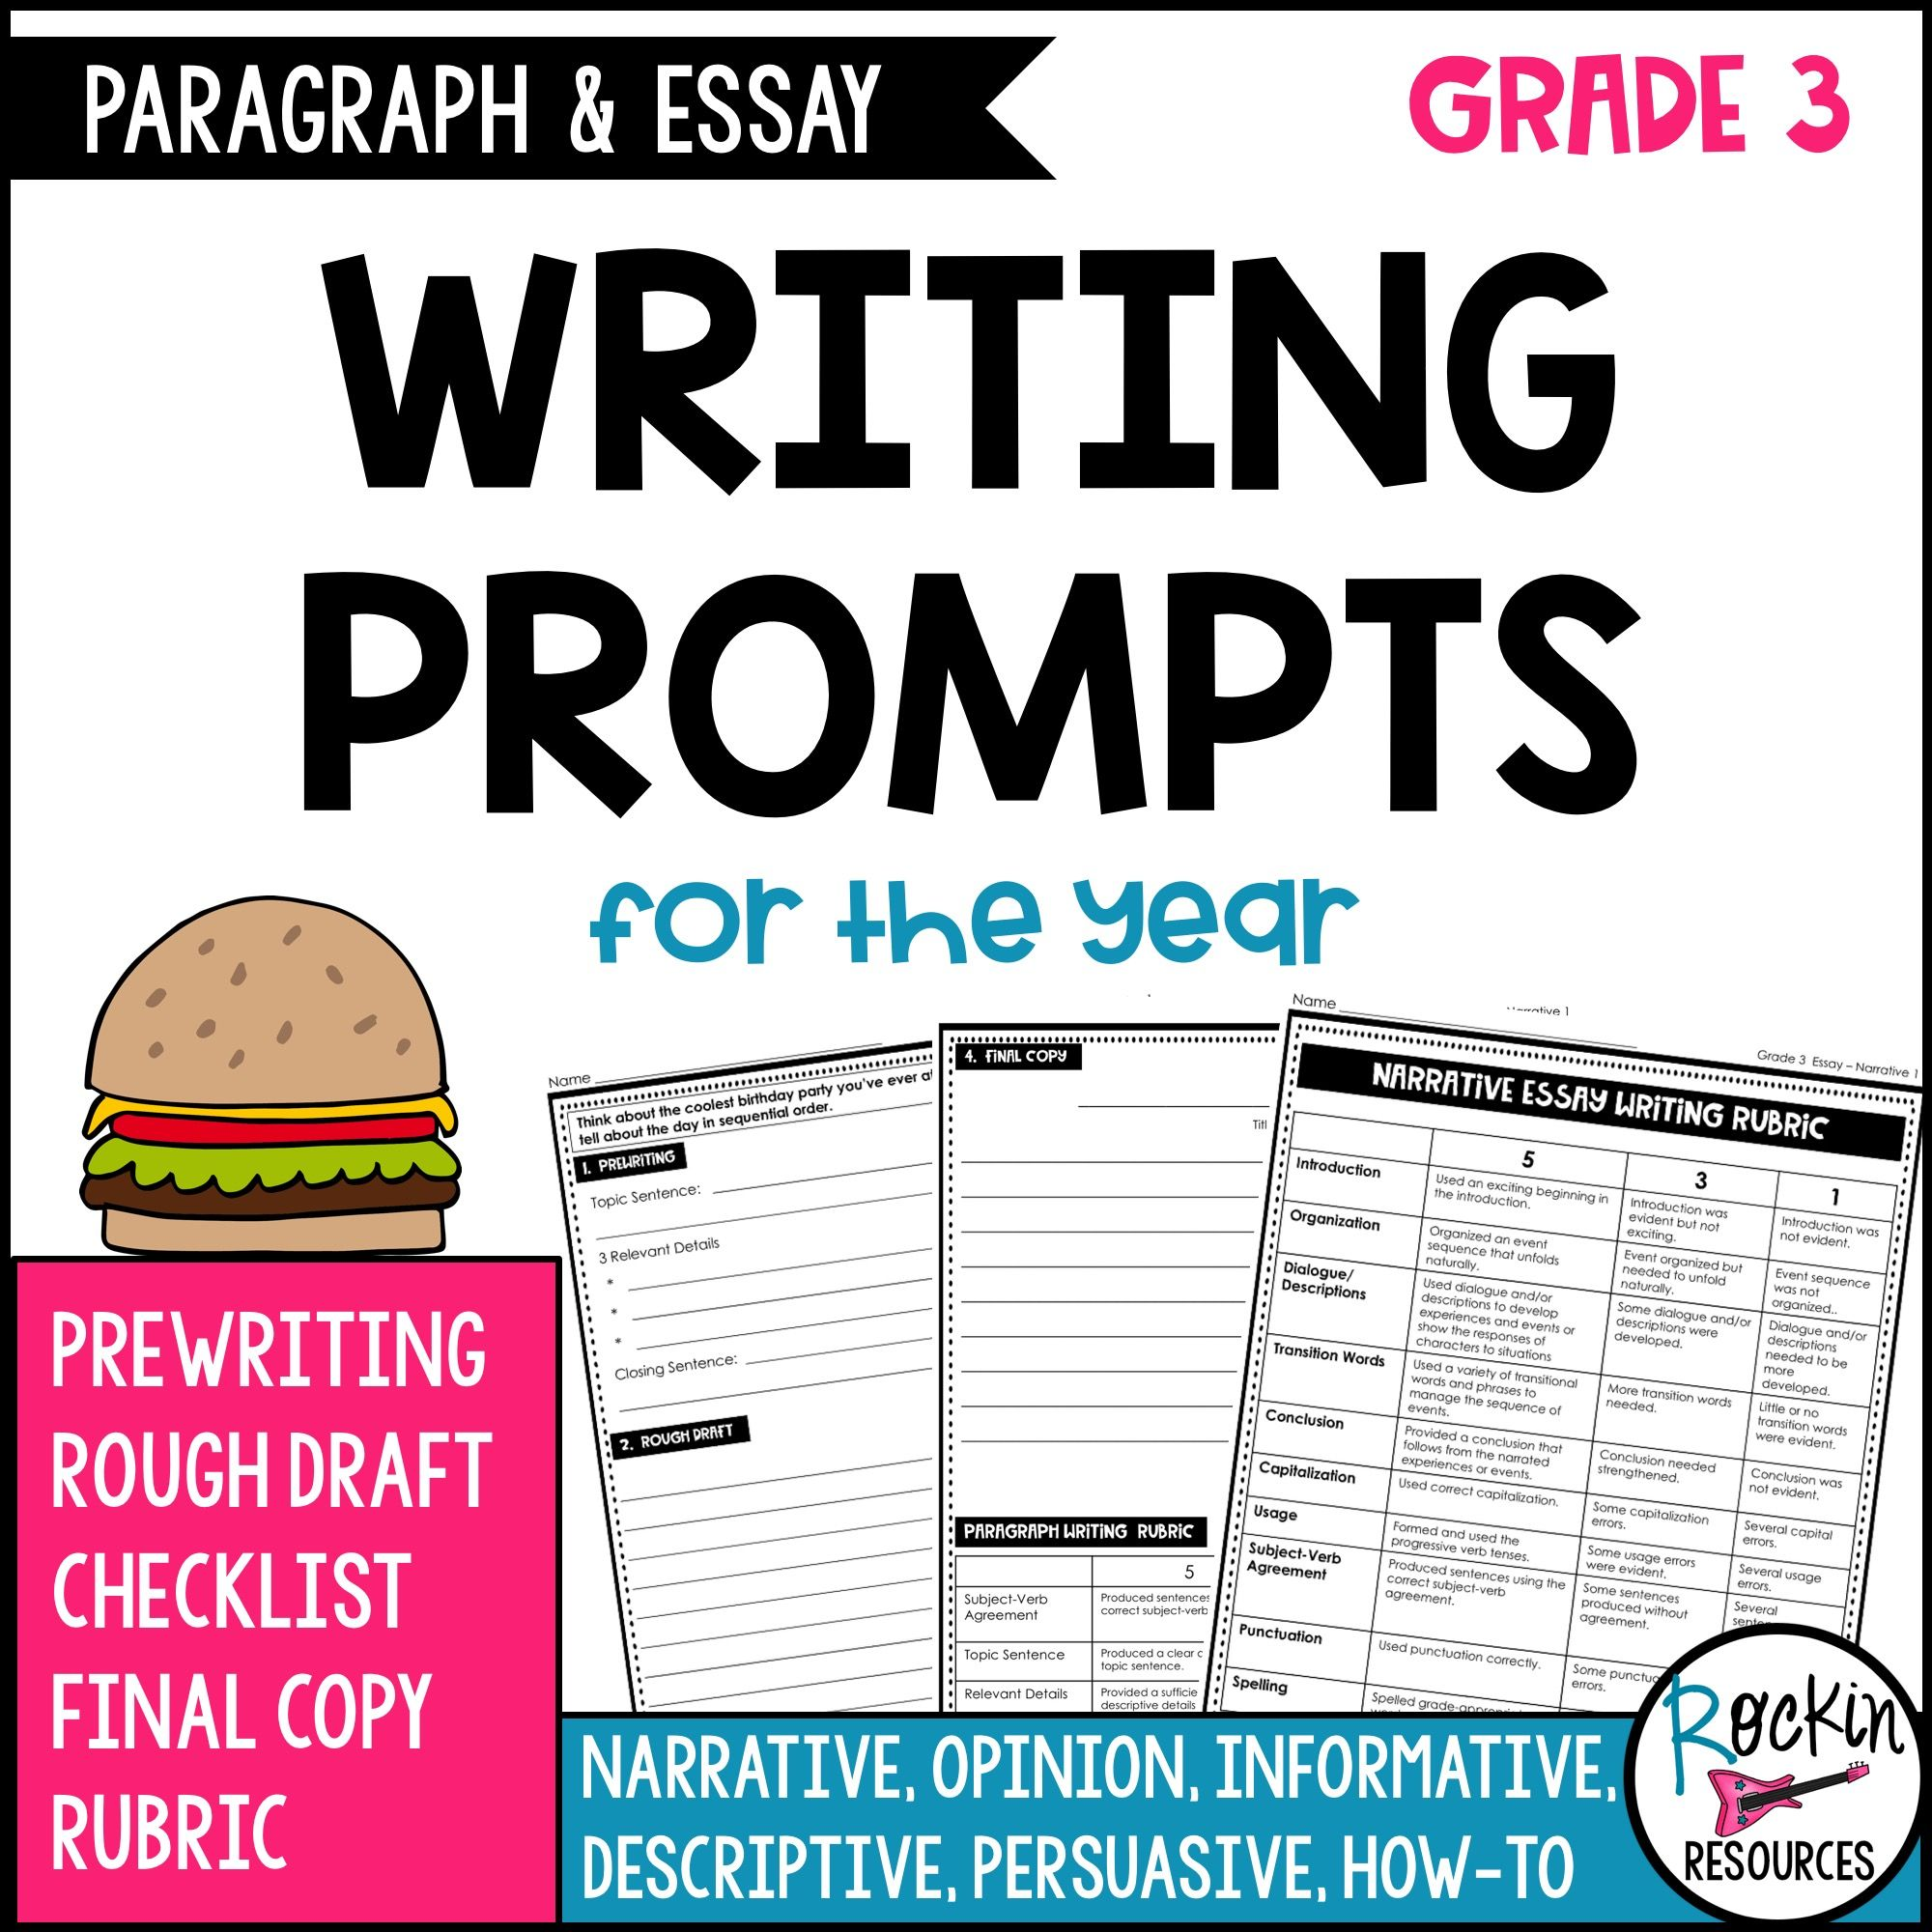 3rd Grade Writing Prompts Paragraph And Essay Writing Rockin Resources Paragraph Writing 4th Grade Writing Prompts 3rd Grade Writing Prompts [ 2000 x 2000 Pixel ]